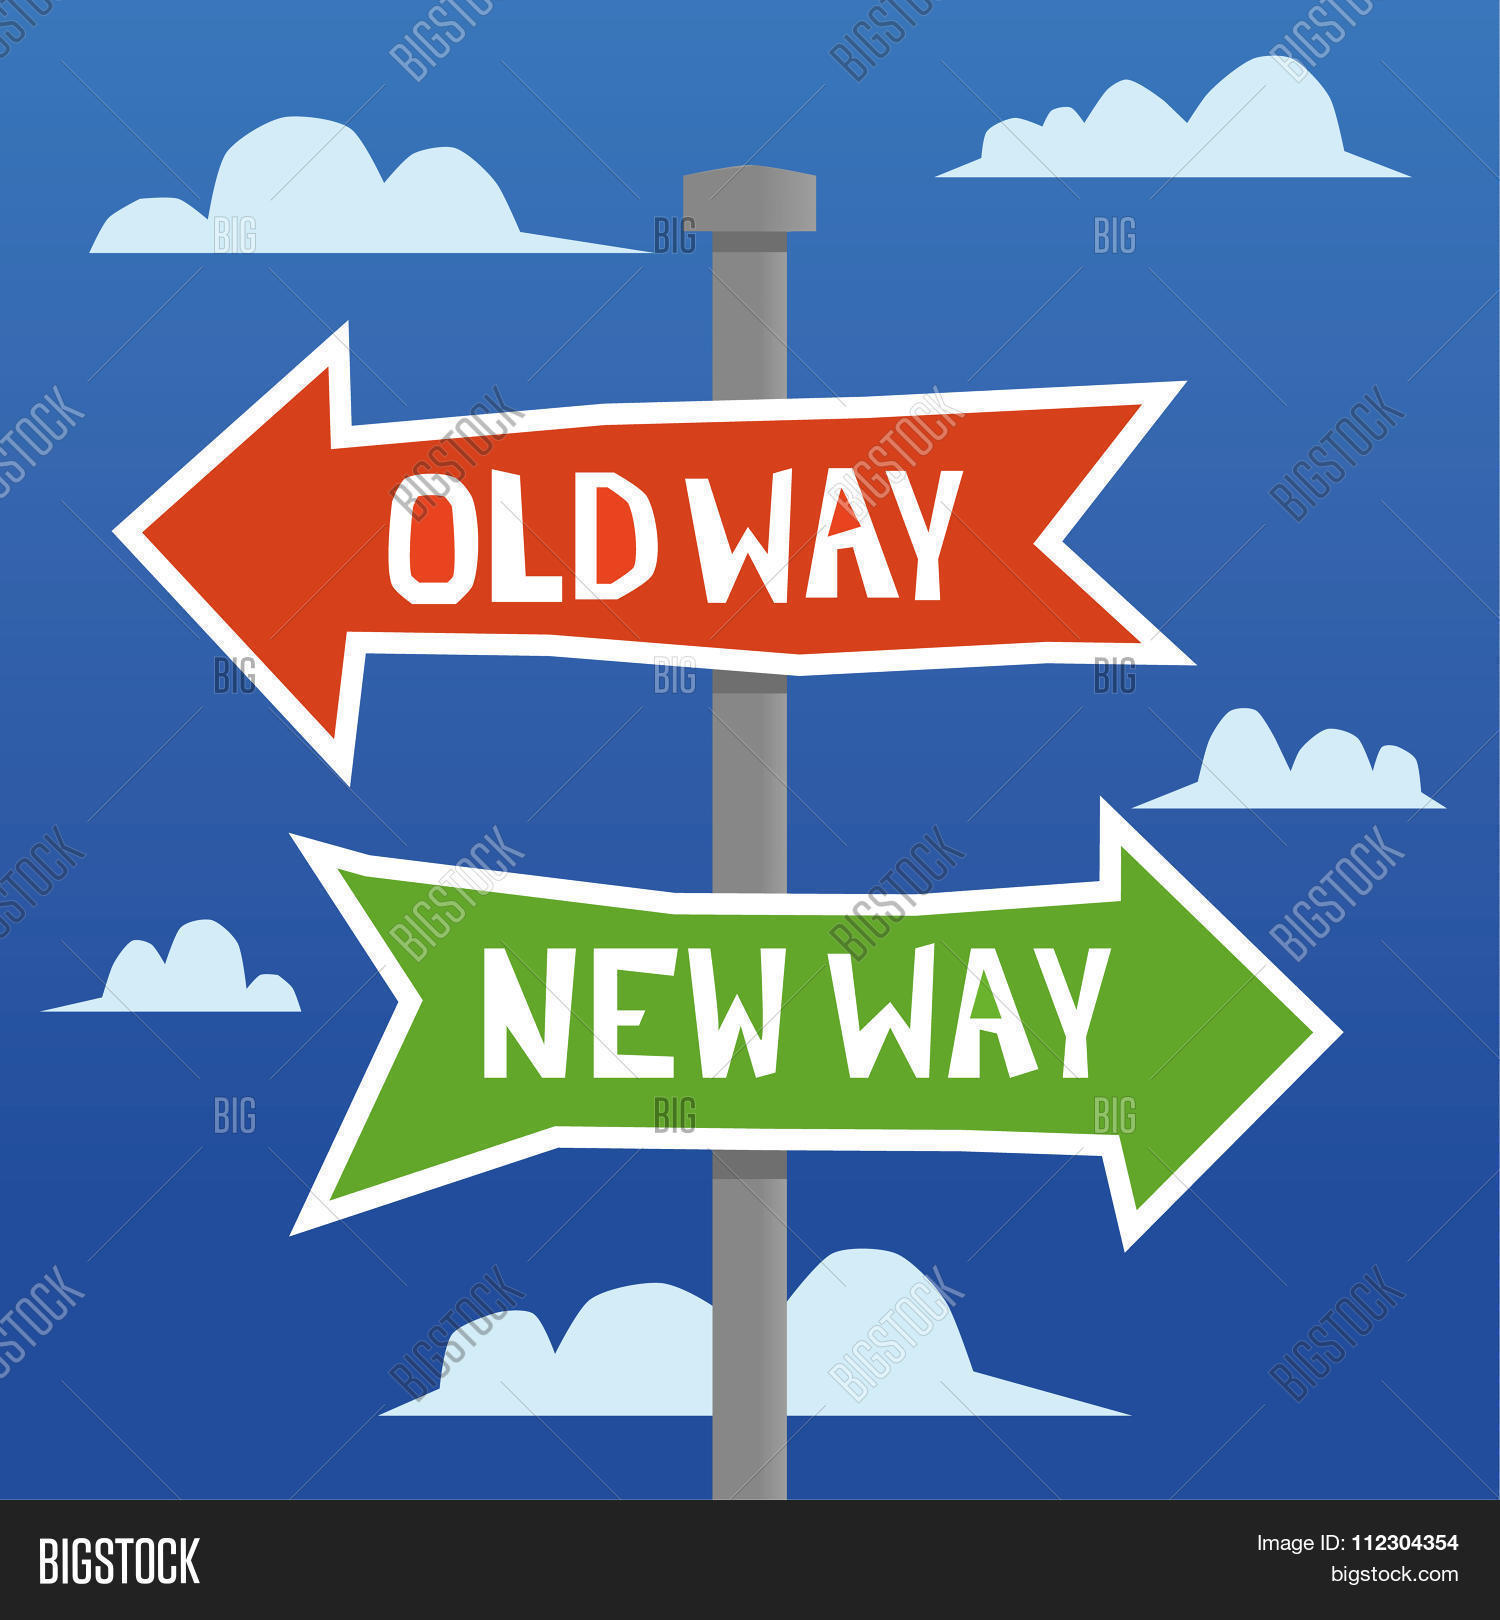 hight resolution of old way new way